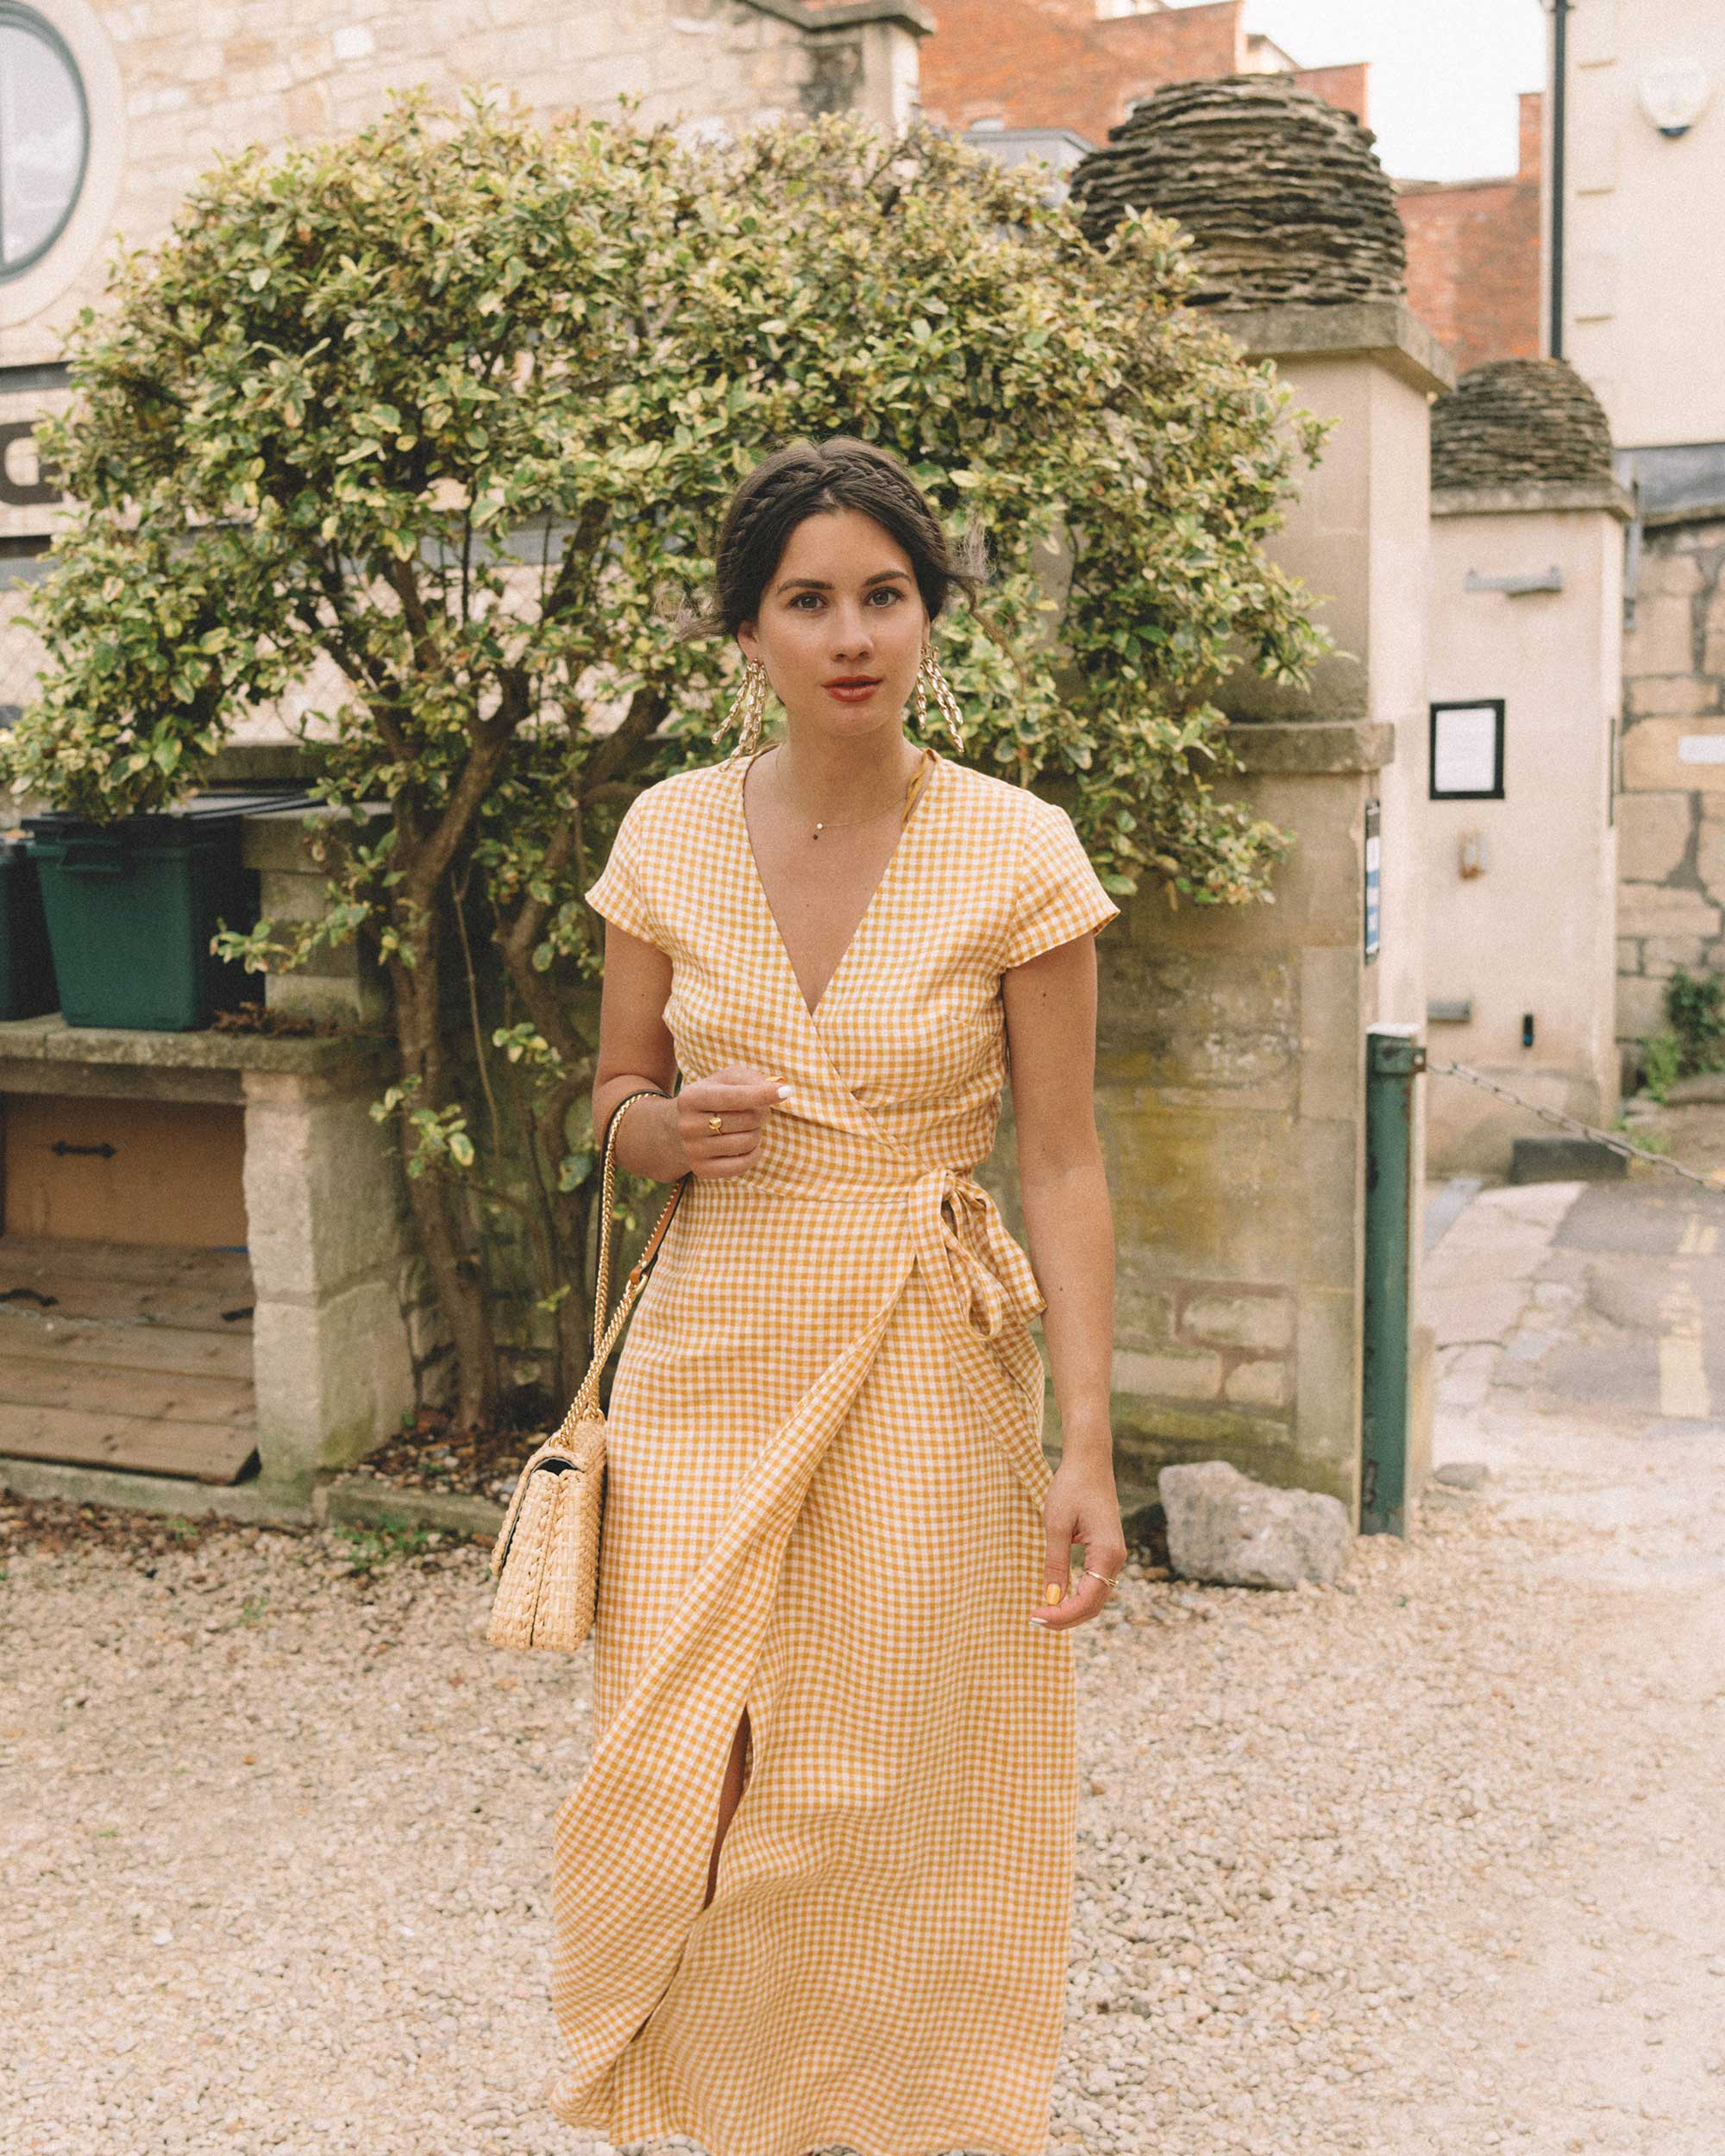 Gingham in England - Exploring the English Countryside Cotswolds wearing a gingham linen midi wrap dress from & Other Stories.